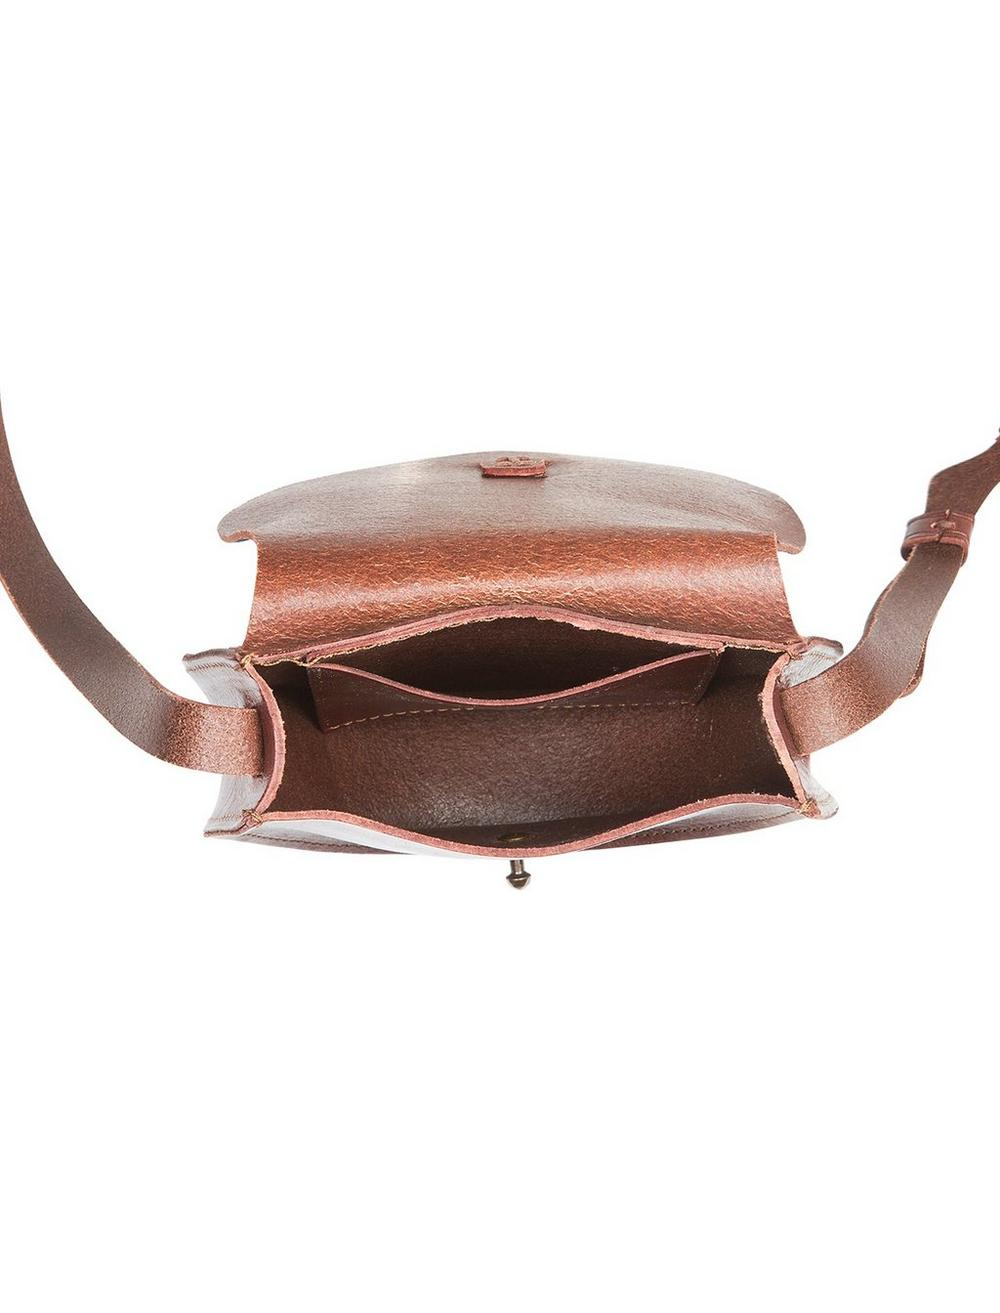 THE POINT FLAP CROSSBODY, image 4